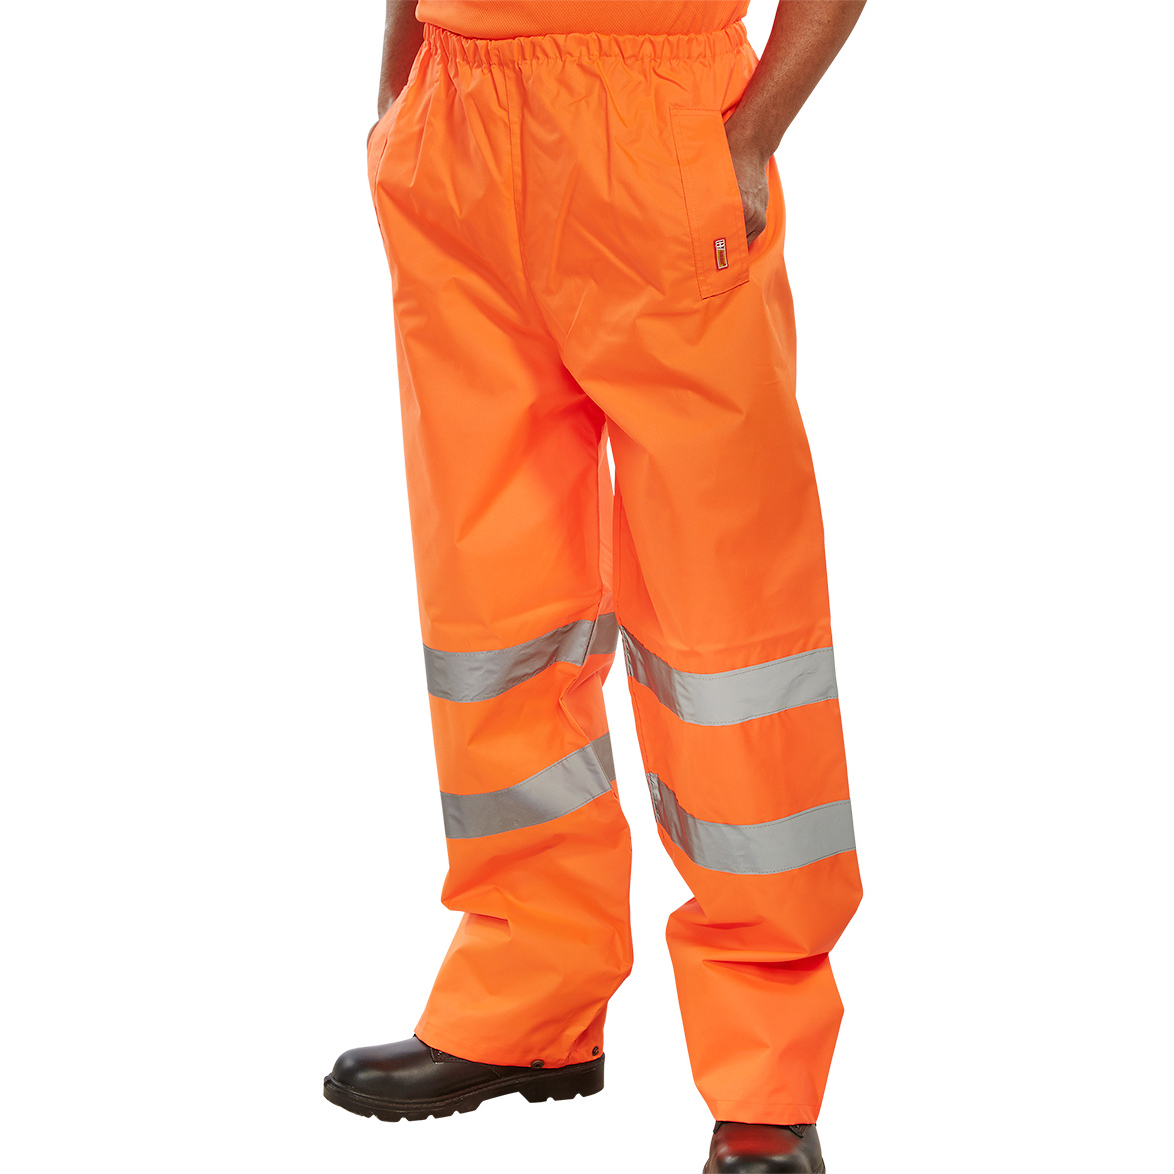 BSeen Traffic Trousers Hi-Vis Reflective Tape Large Orange Ref TENORL Up to 3 Day Leadtime